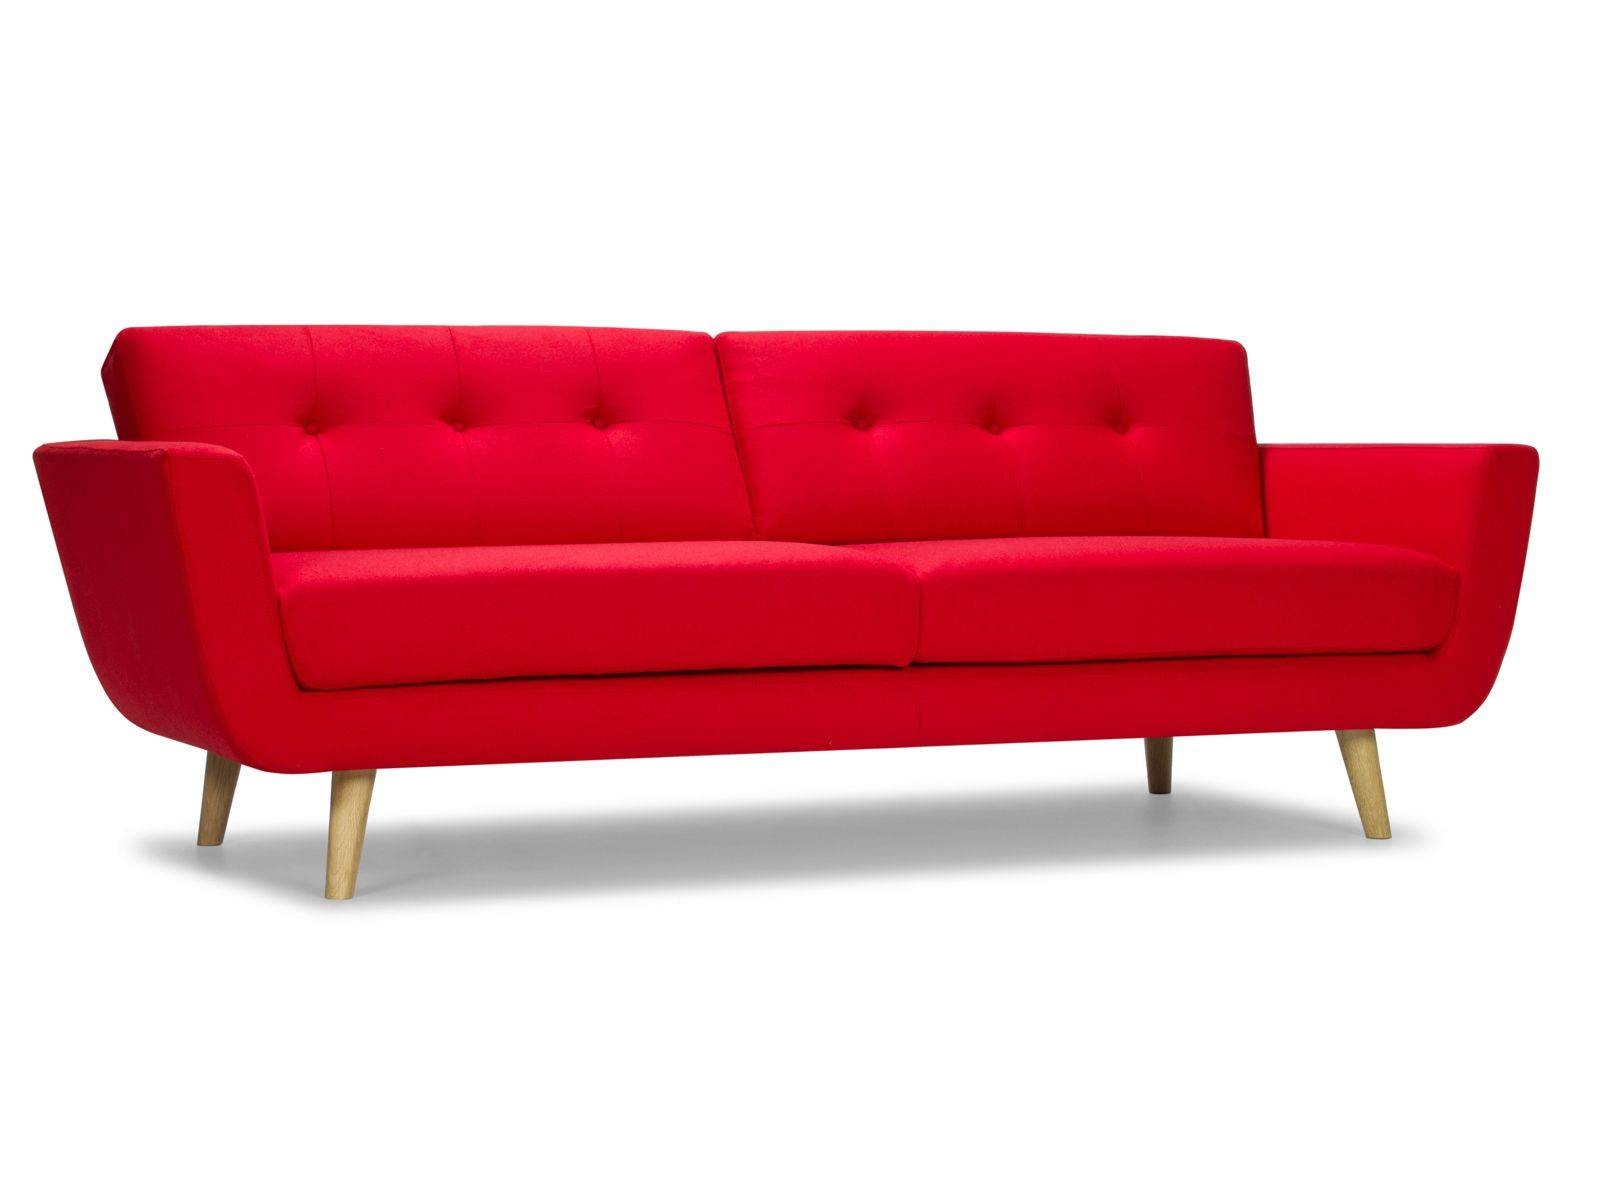 Belfast 3-Seater Retro Sofa | Real Grown Up Furniture | Pinterest for 3 Seater Sofas For Sale (Image 3 of 30)